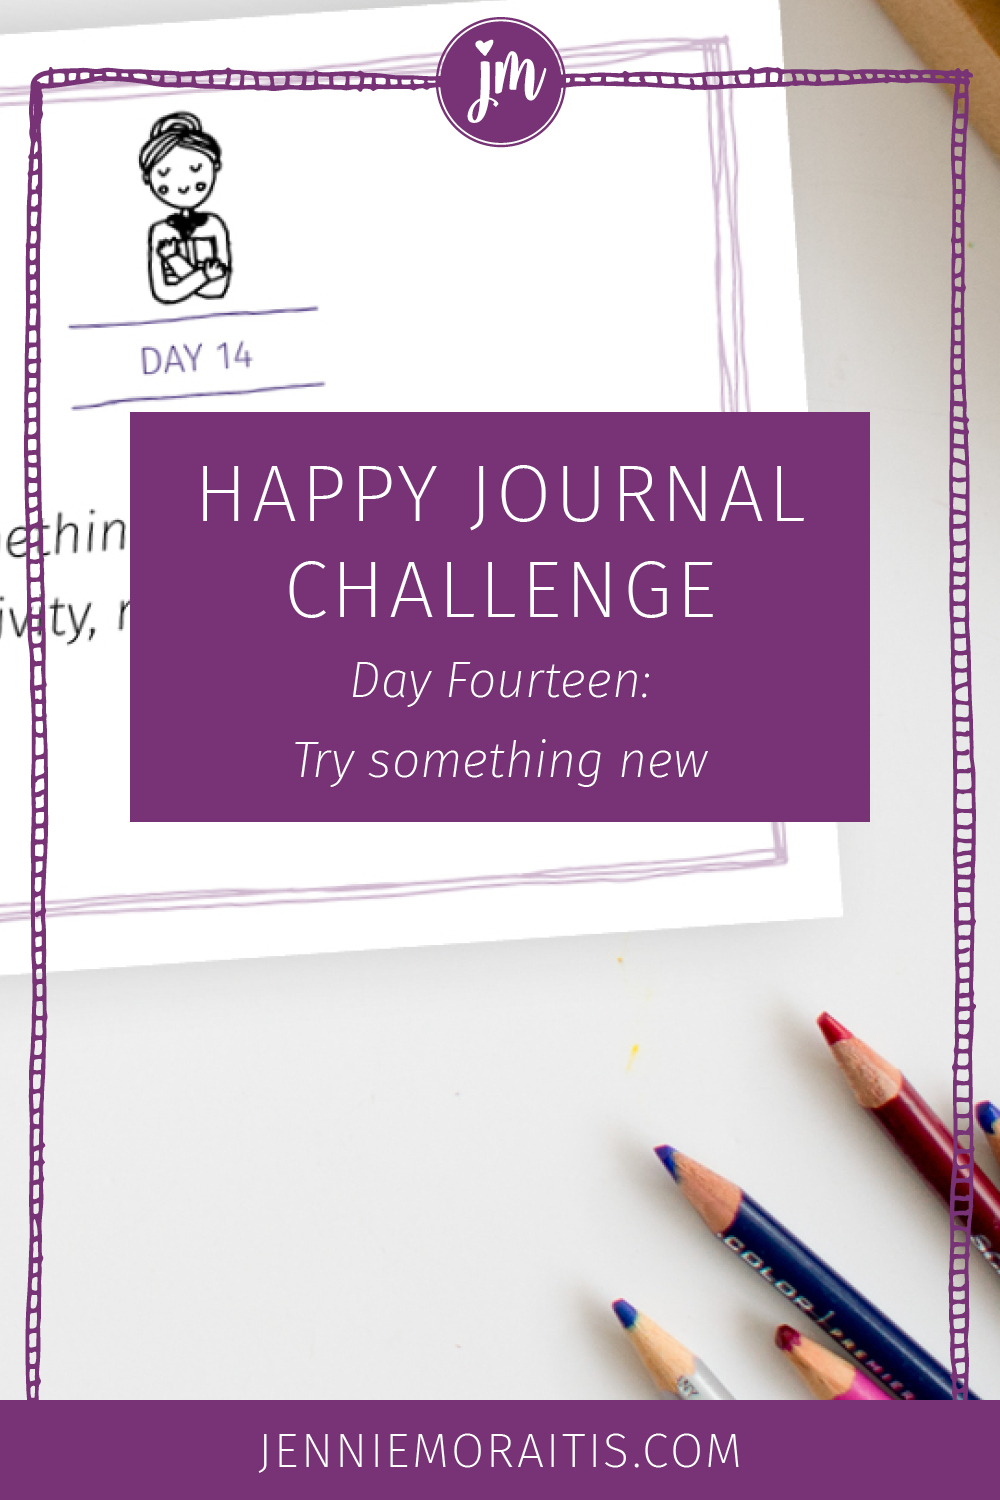 When was the last time you had the opportunity to try something new in your life or creative life? Doing so is great for your happiness. Click over to learn more!